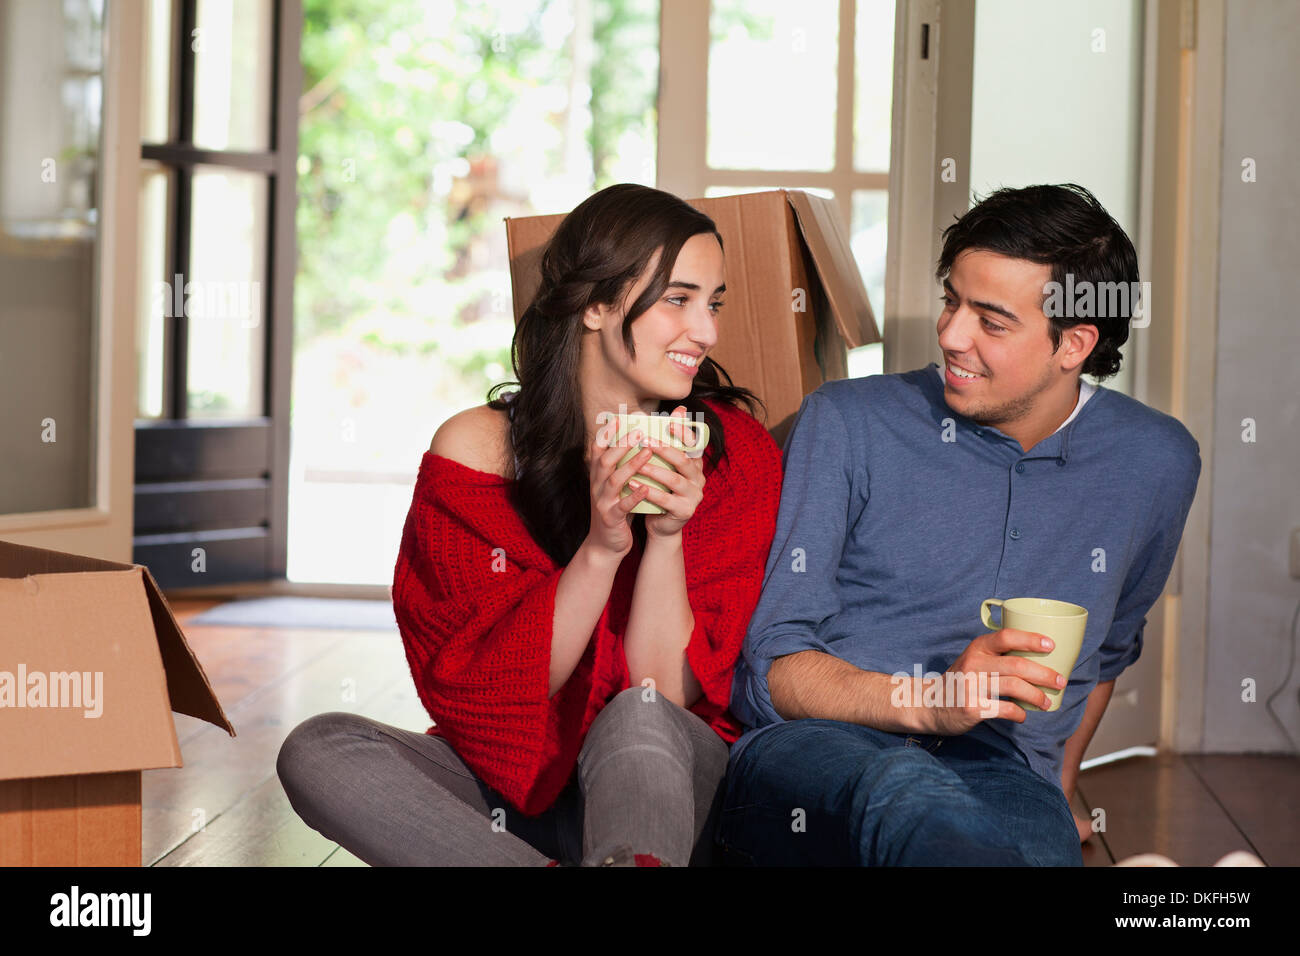 Young couple having coffee break whilst moving house Photo Stock